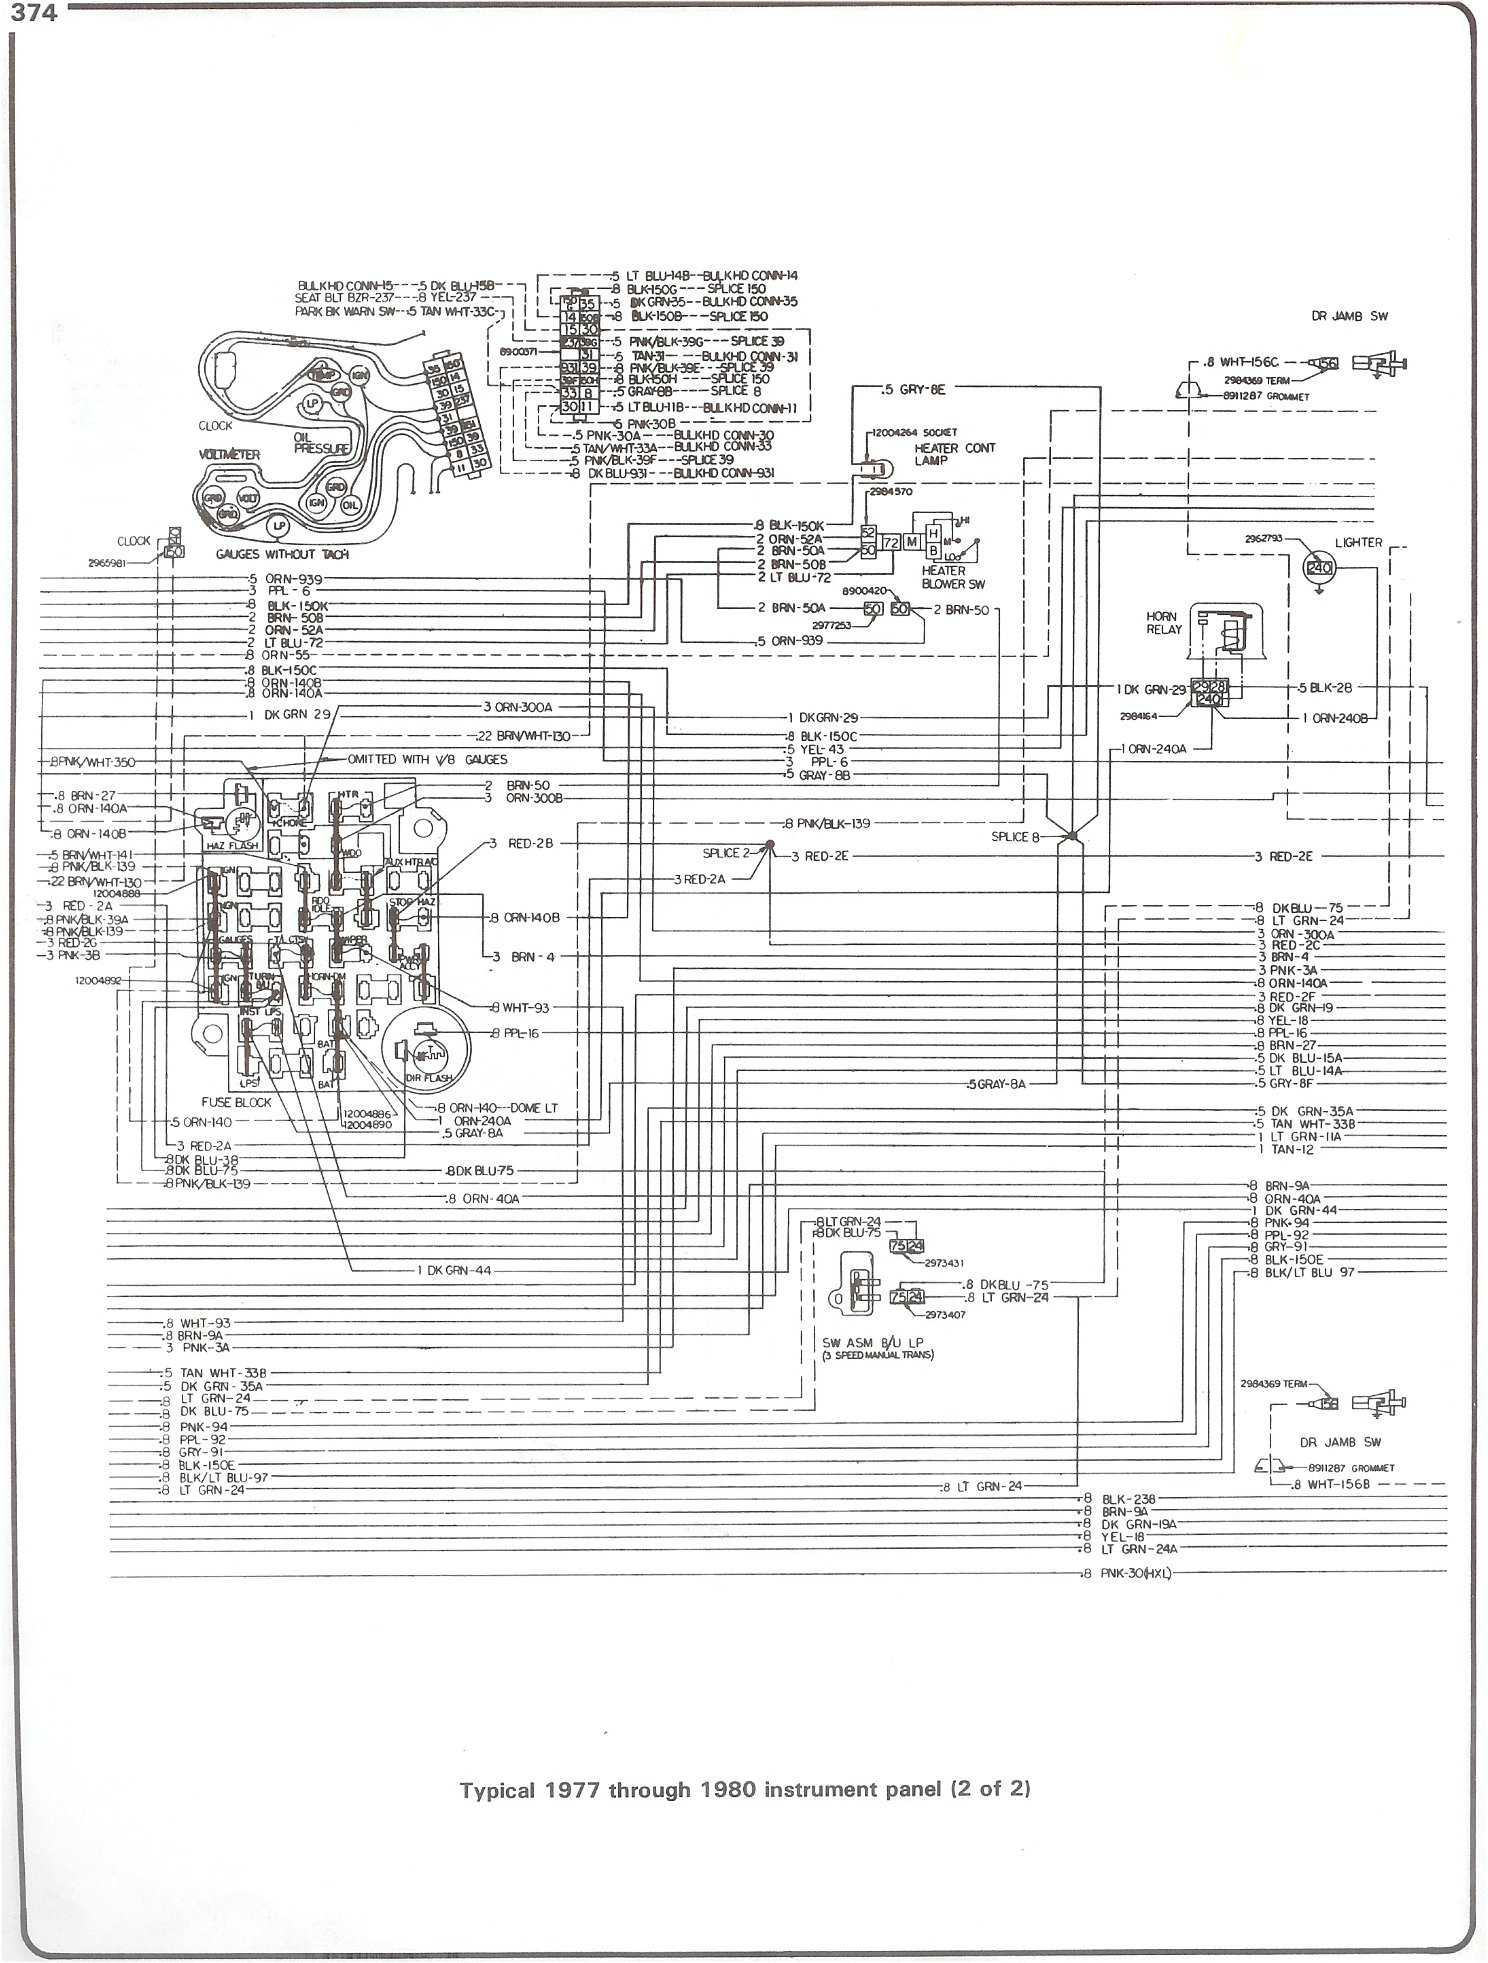 gm horn wire diagram trusted wiring diagrams u2022 rh sivamuni com